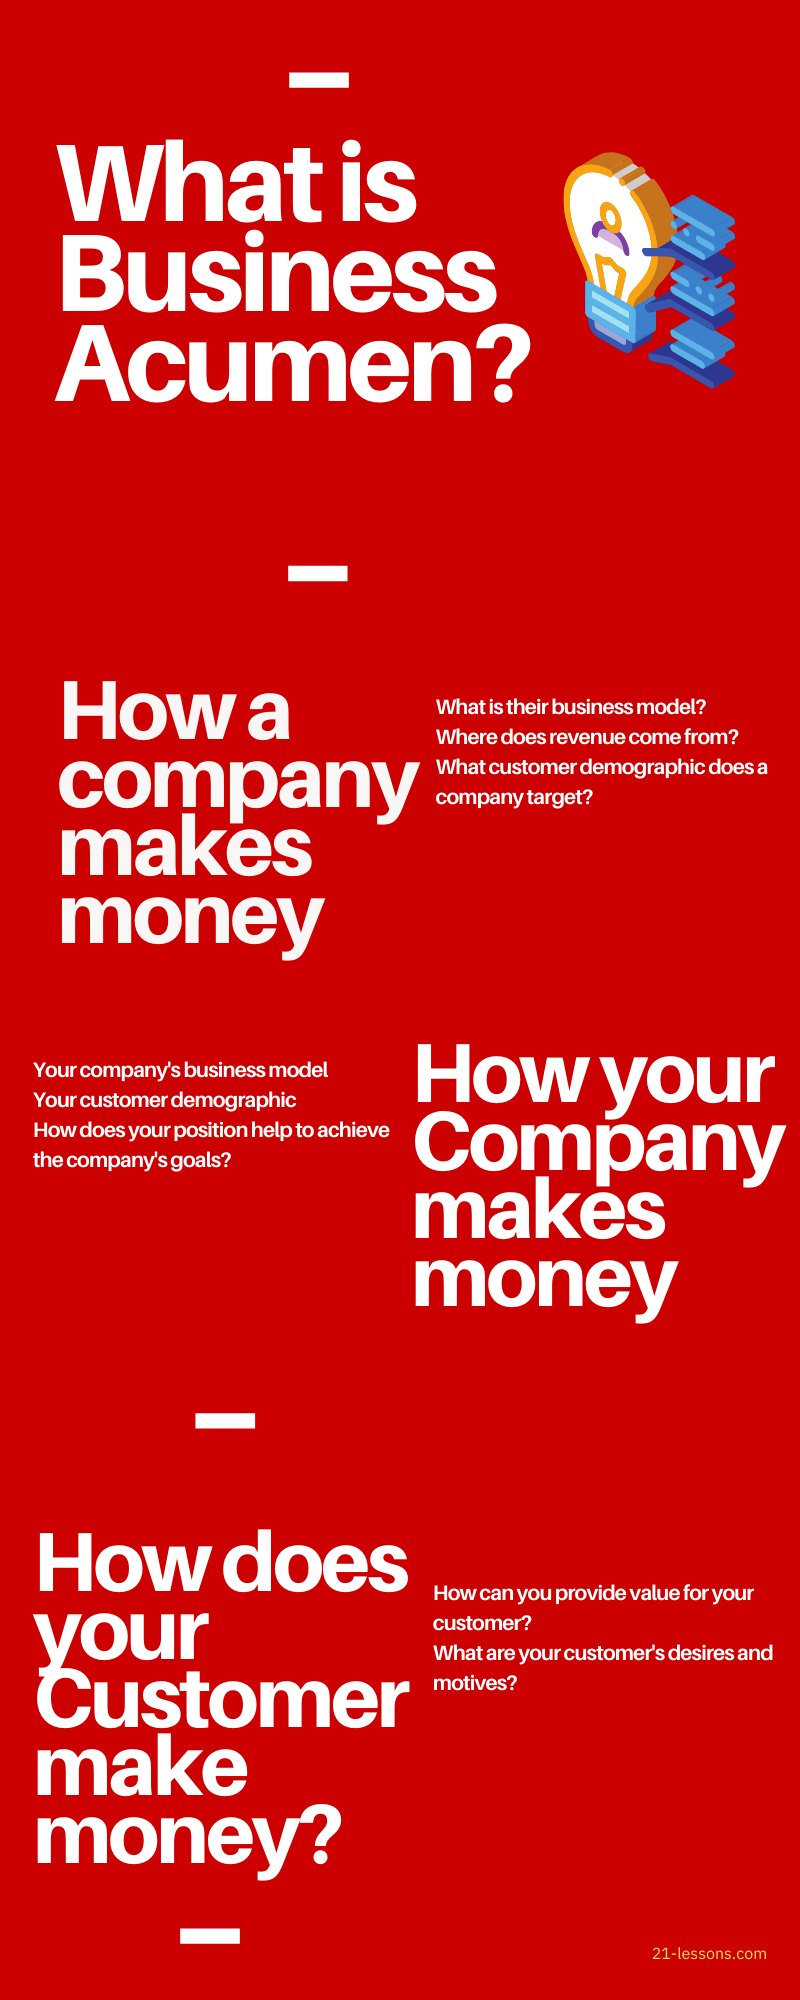 What is Business Acumen?  How does a company make money? How does your company make money? How does your customer make money?